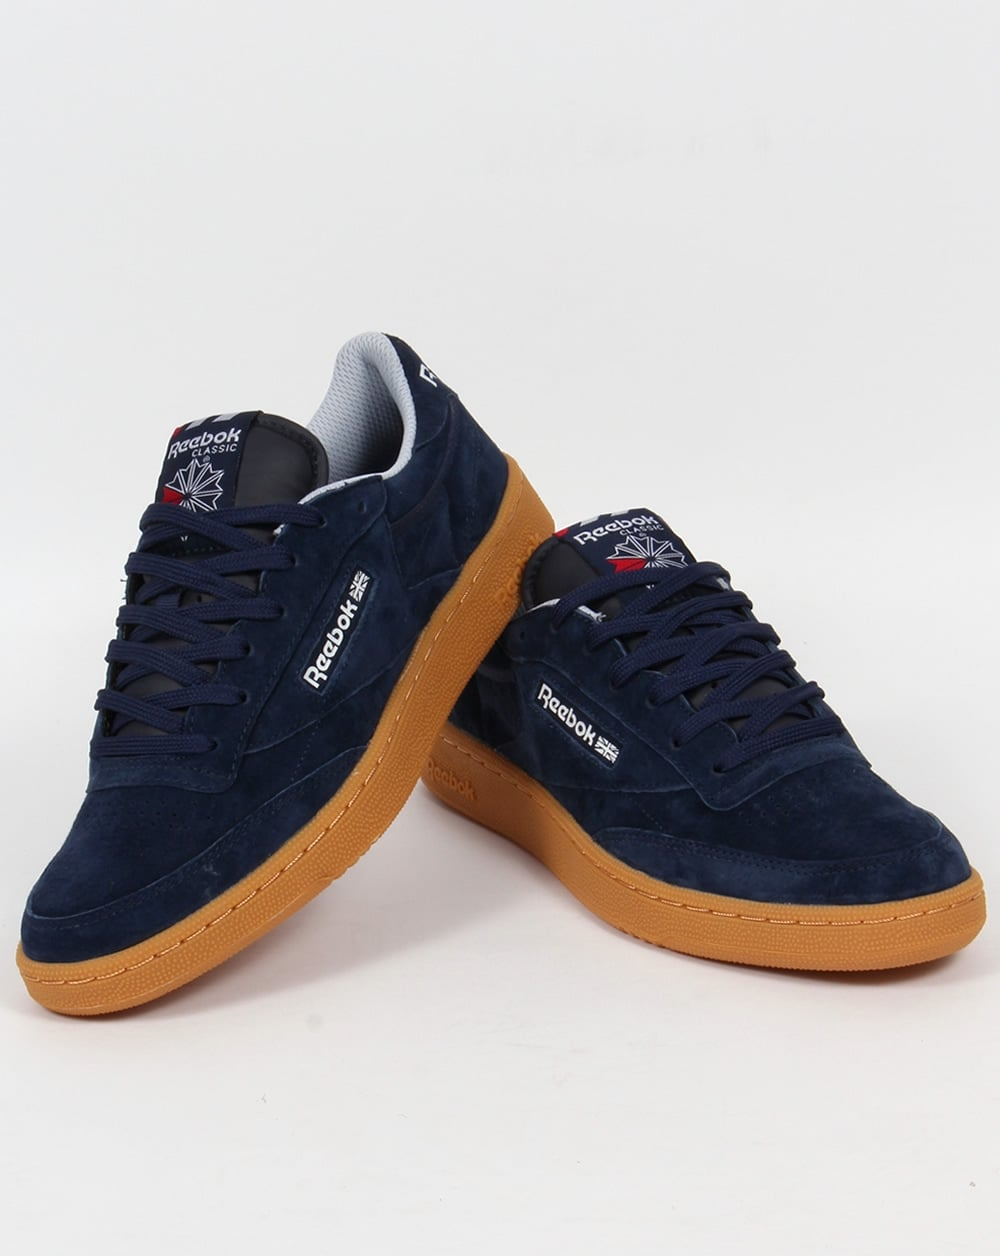 reebok club c 85 indoor trainers navy gum men 39 s workout. Black Bedroom Furniture Sets. Home Design Ideas